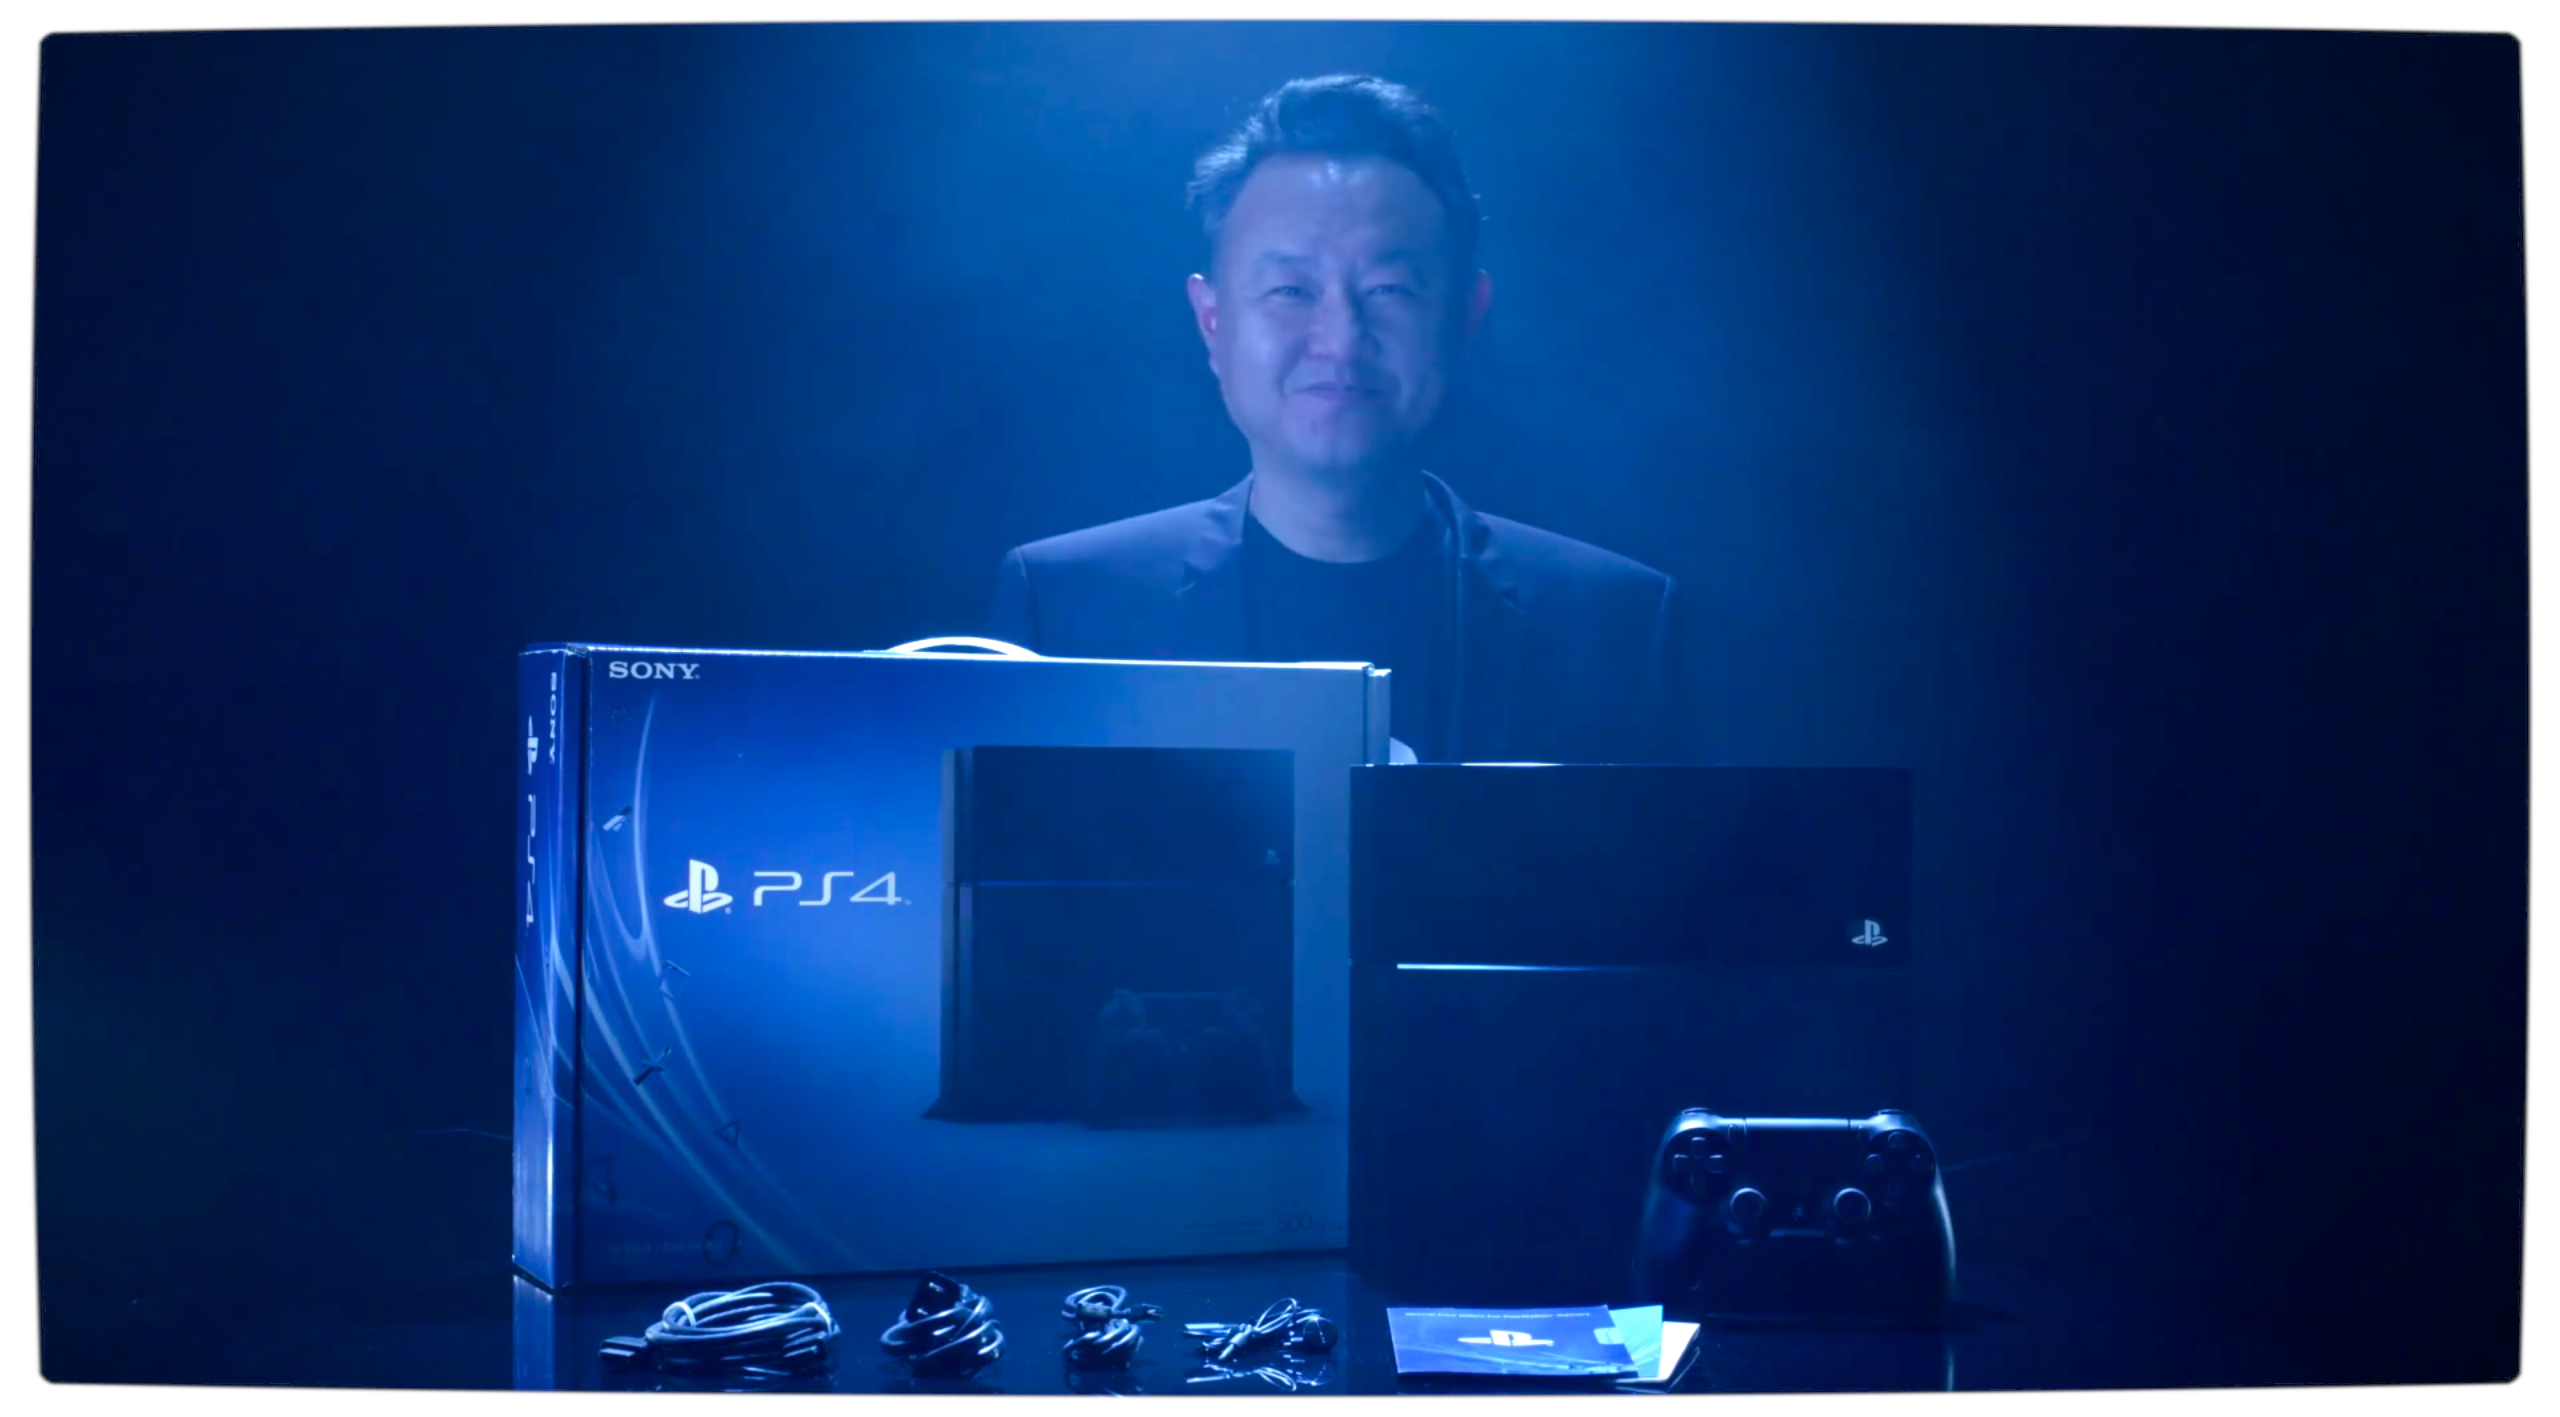 Vamers-Gaming-Sony-Channels-Daft-Punk-in-Official-PlayStation-4-Unboxing-Video-Shuhei-Yoshida-with-the-PlayStation-4